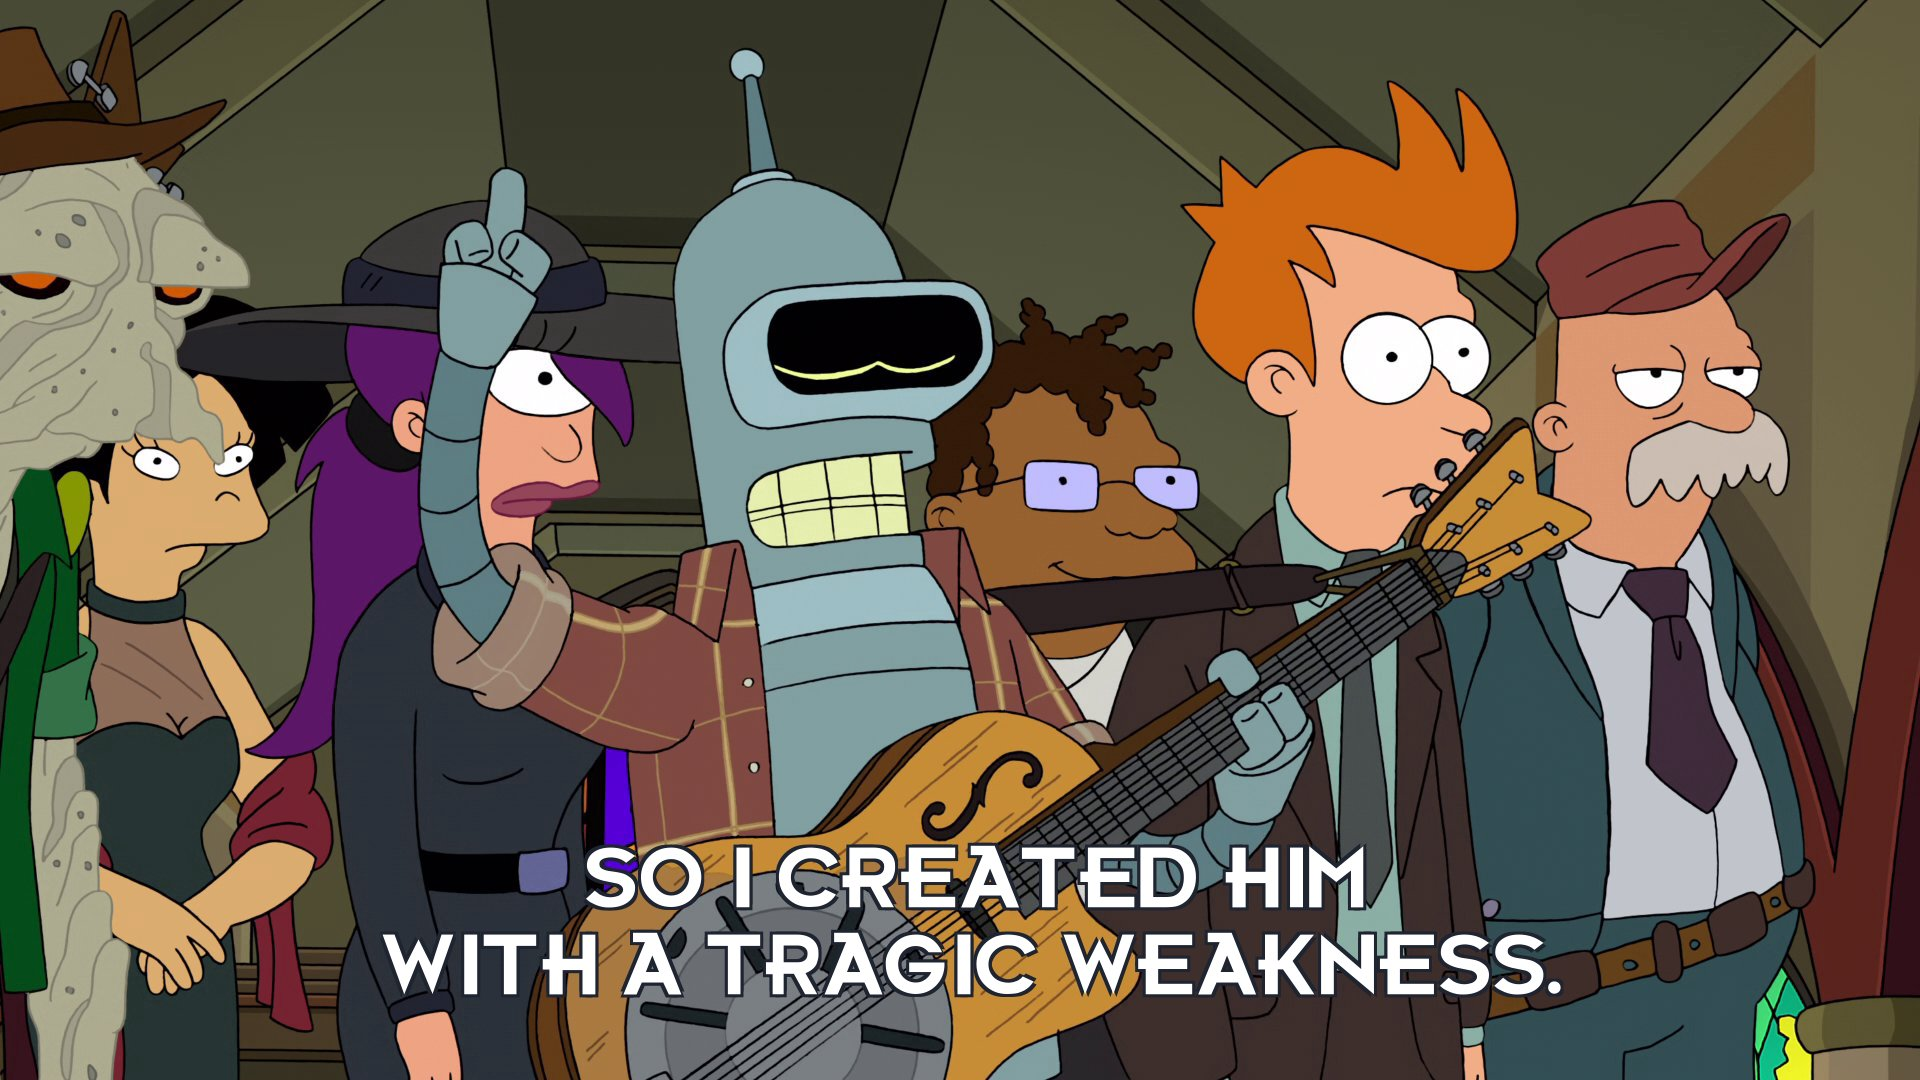 Bender Bending Rodriguez: So I created him with a tragic weakness.